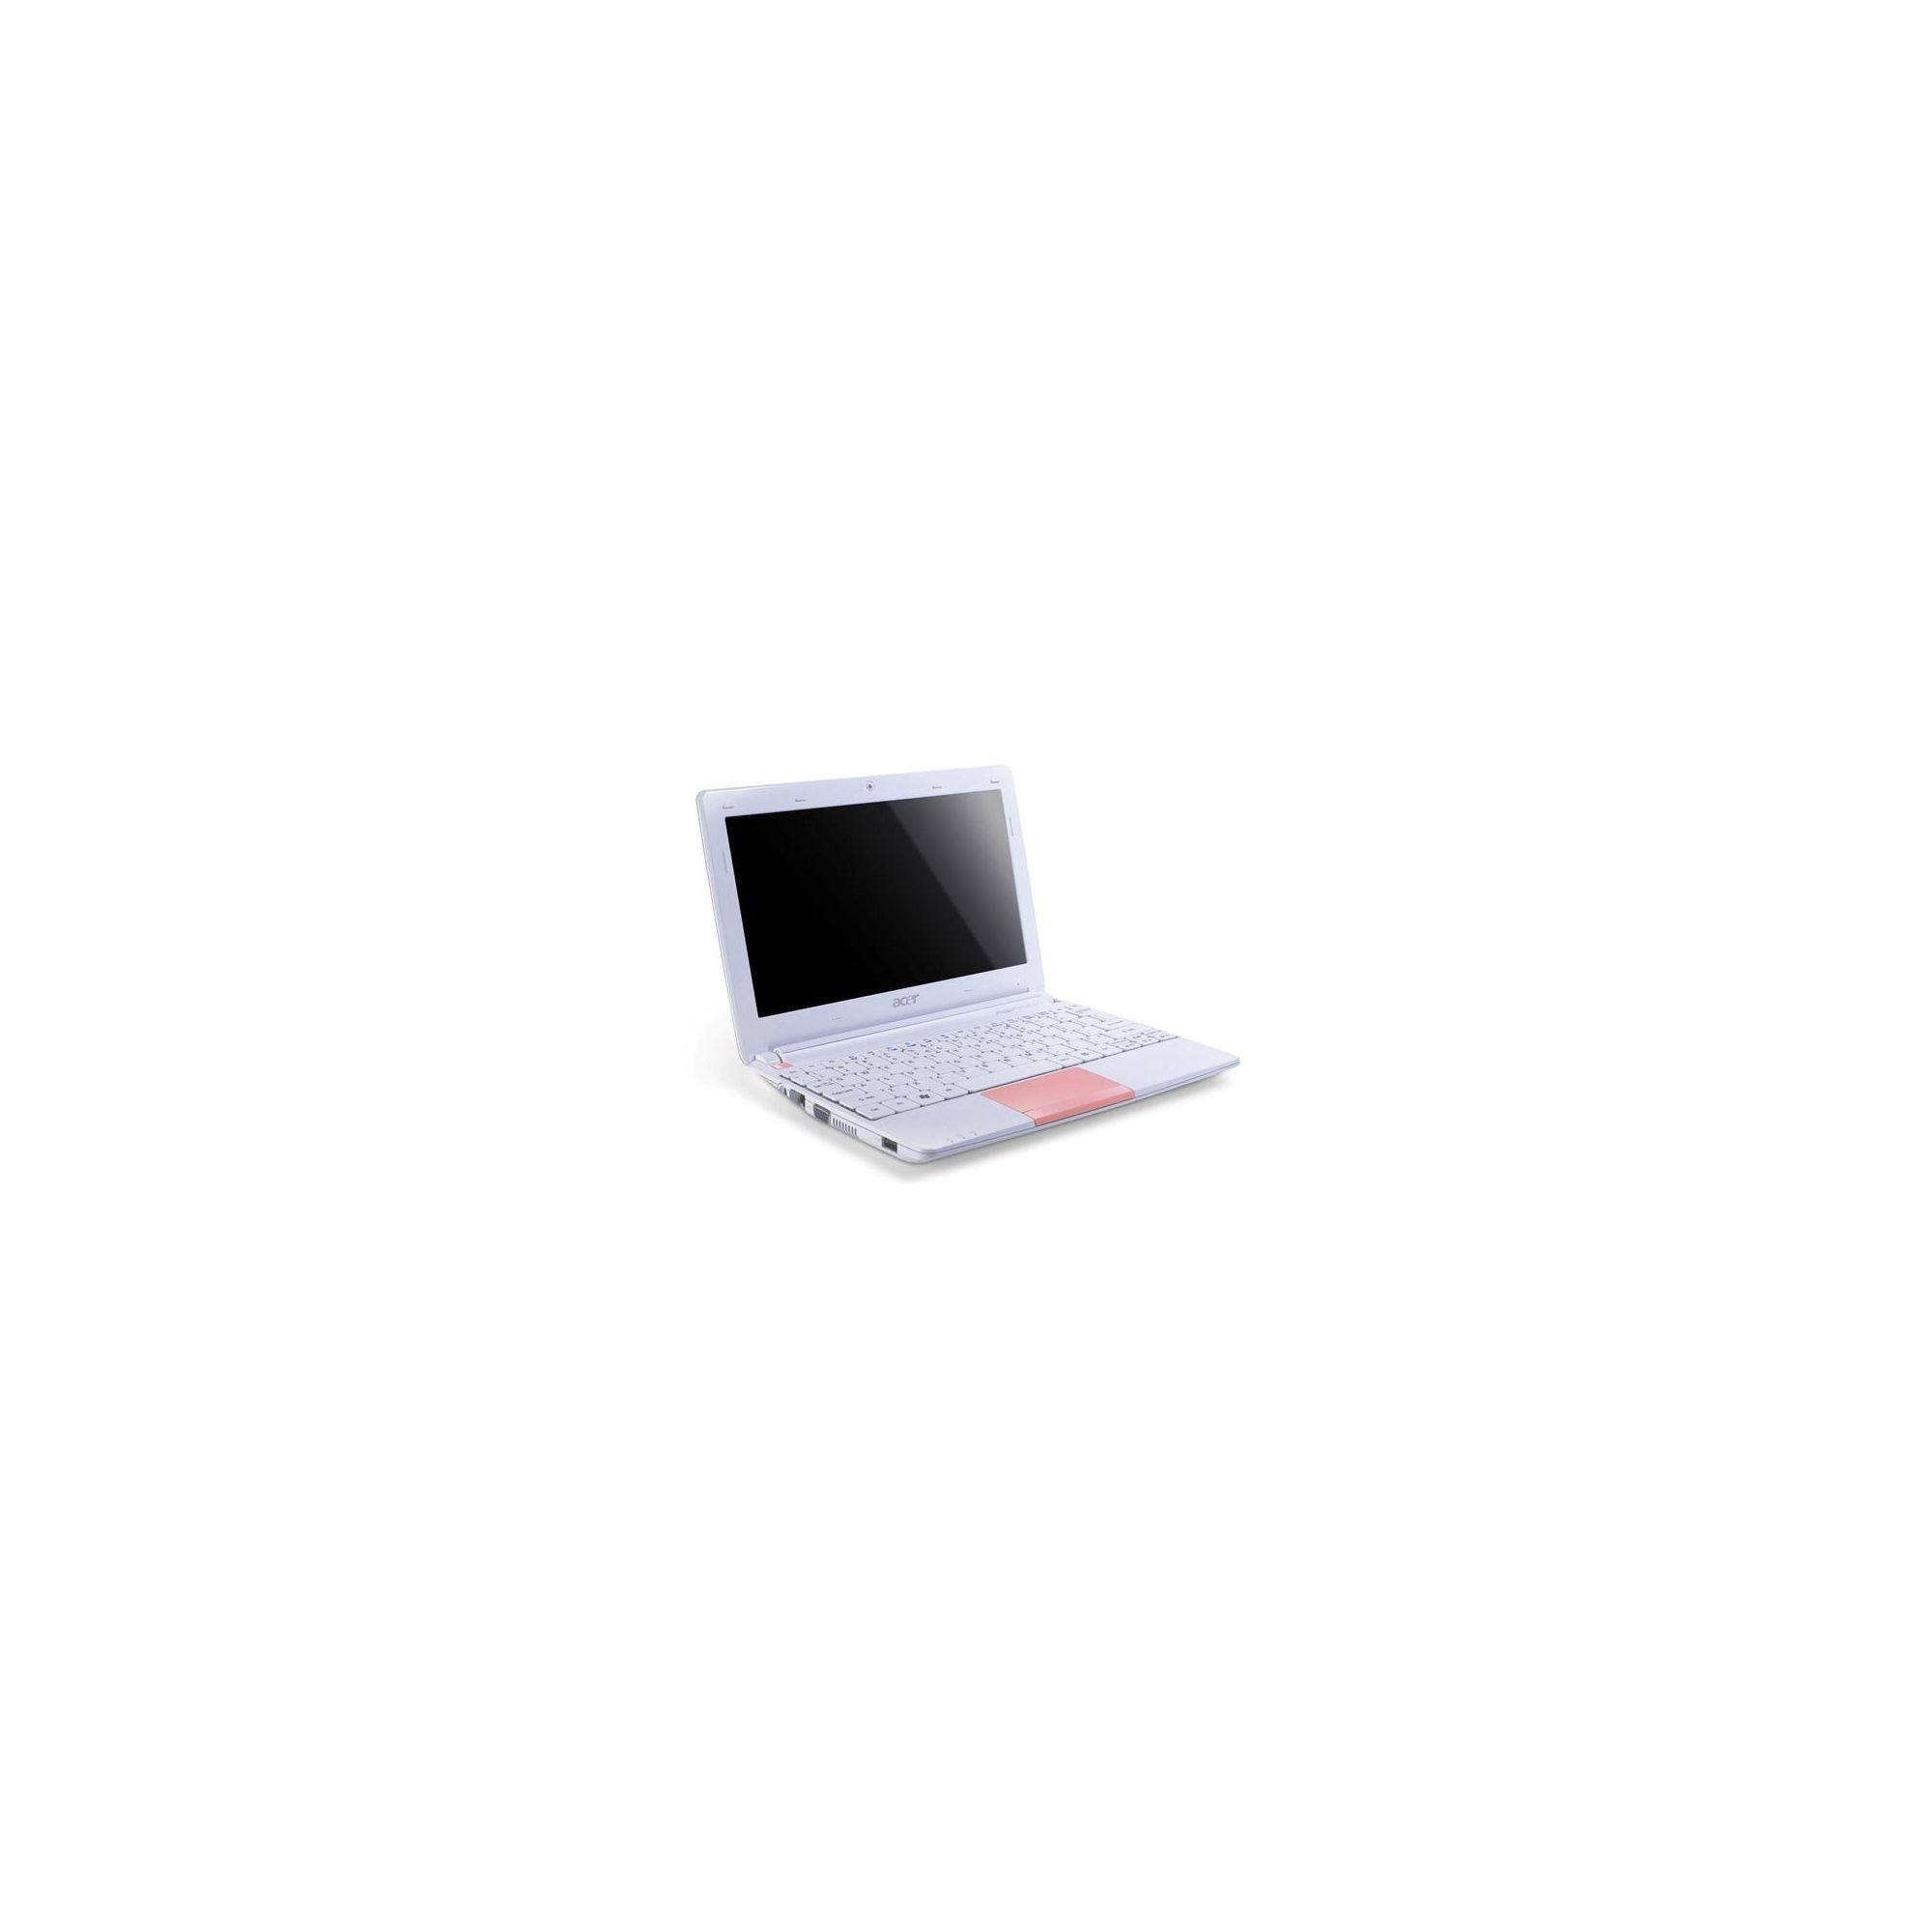 Acer Aspire Happy 2 Netbook (Intel Atom, 1GB, 250GB, 10.1'' Display) Pink at Tesco Direct